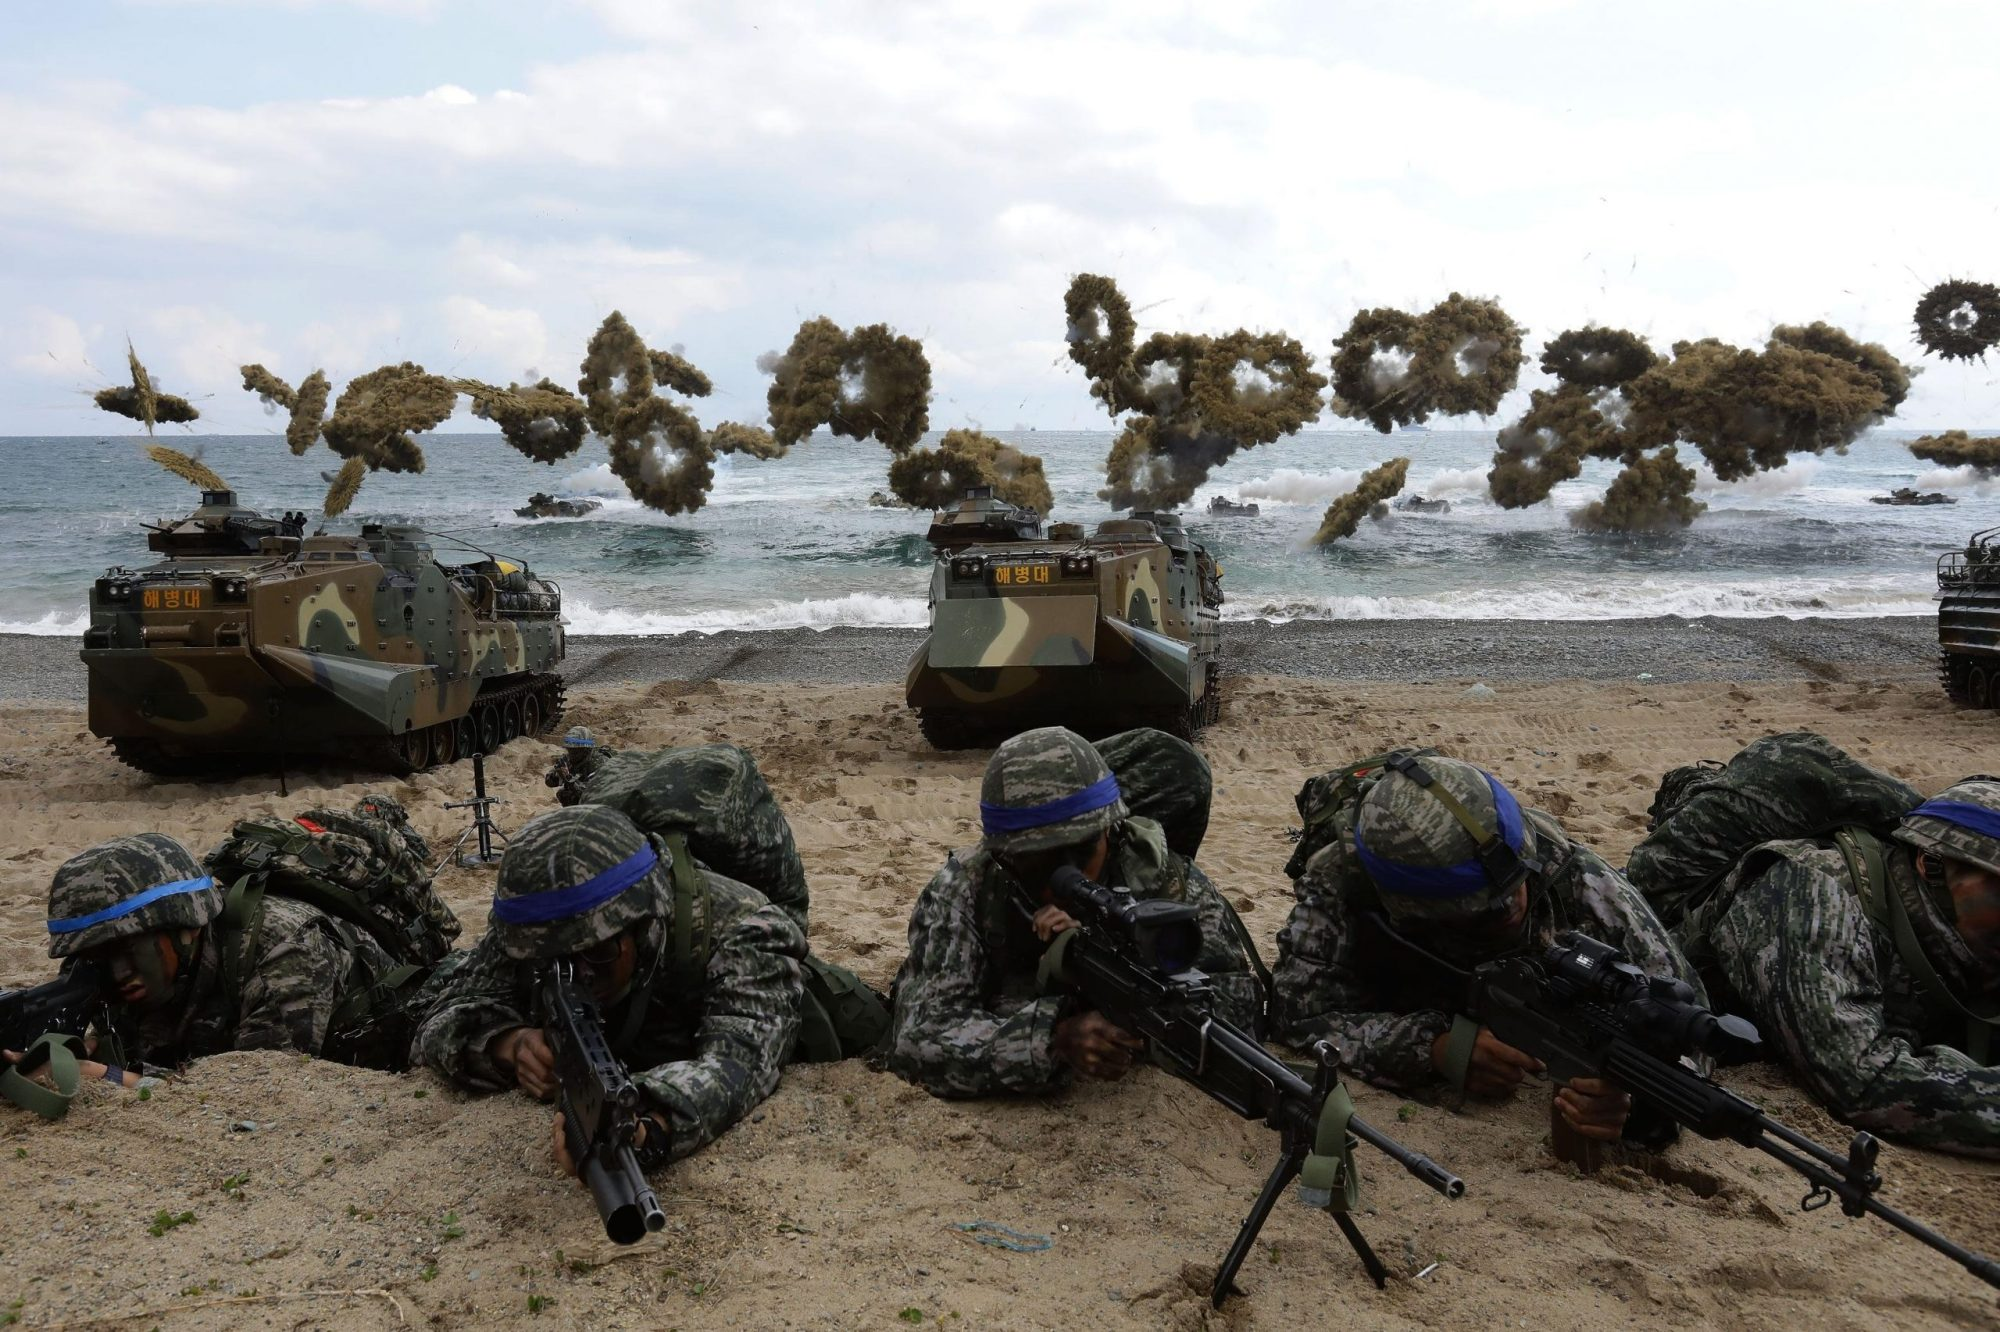 The United States and South Korea are considering scaling back upcoming joint military exercises due to the coronavirus outbreak in the Korean Peninsula, according to US Secretary of Defense Mark Esper. (Credit: Chung Sung-Jun/Getty Images AsiaPac/Getty Images)